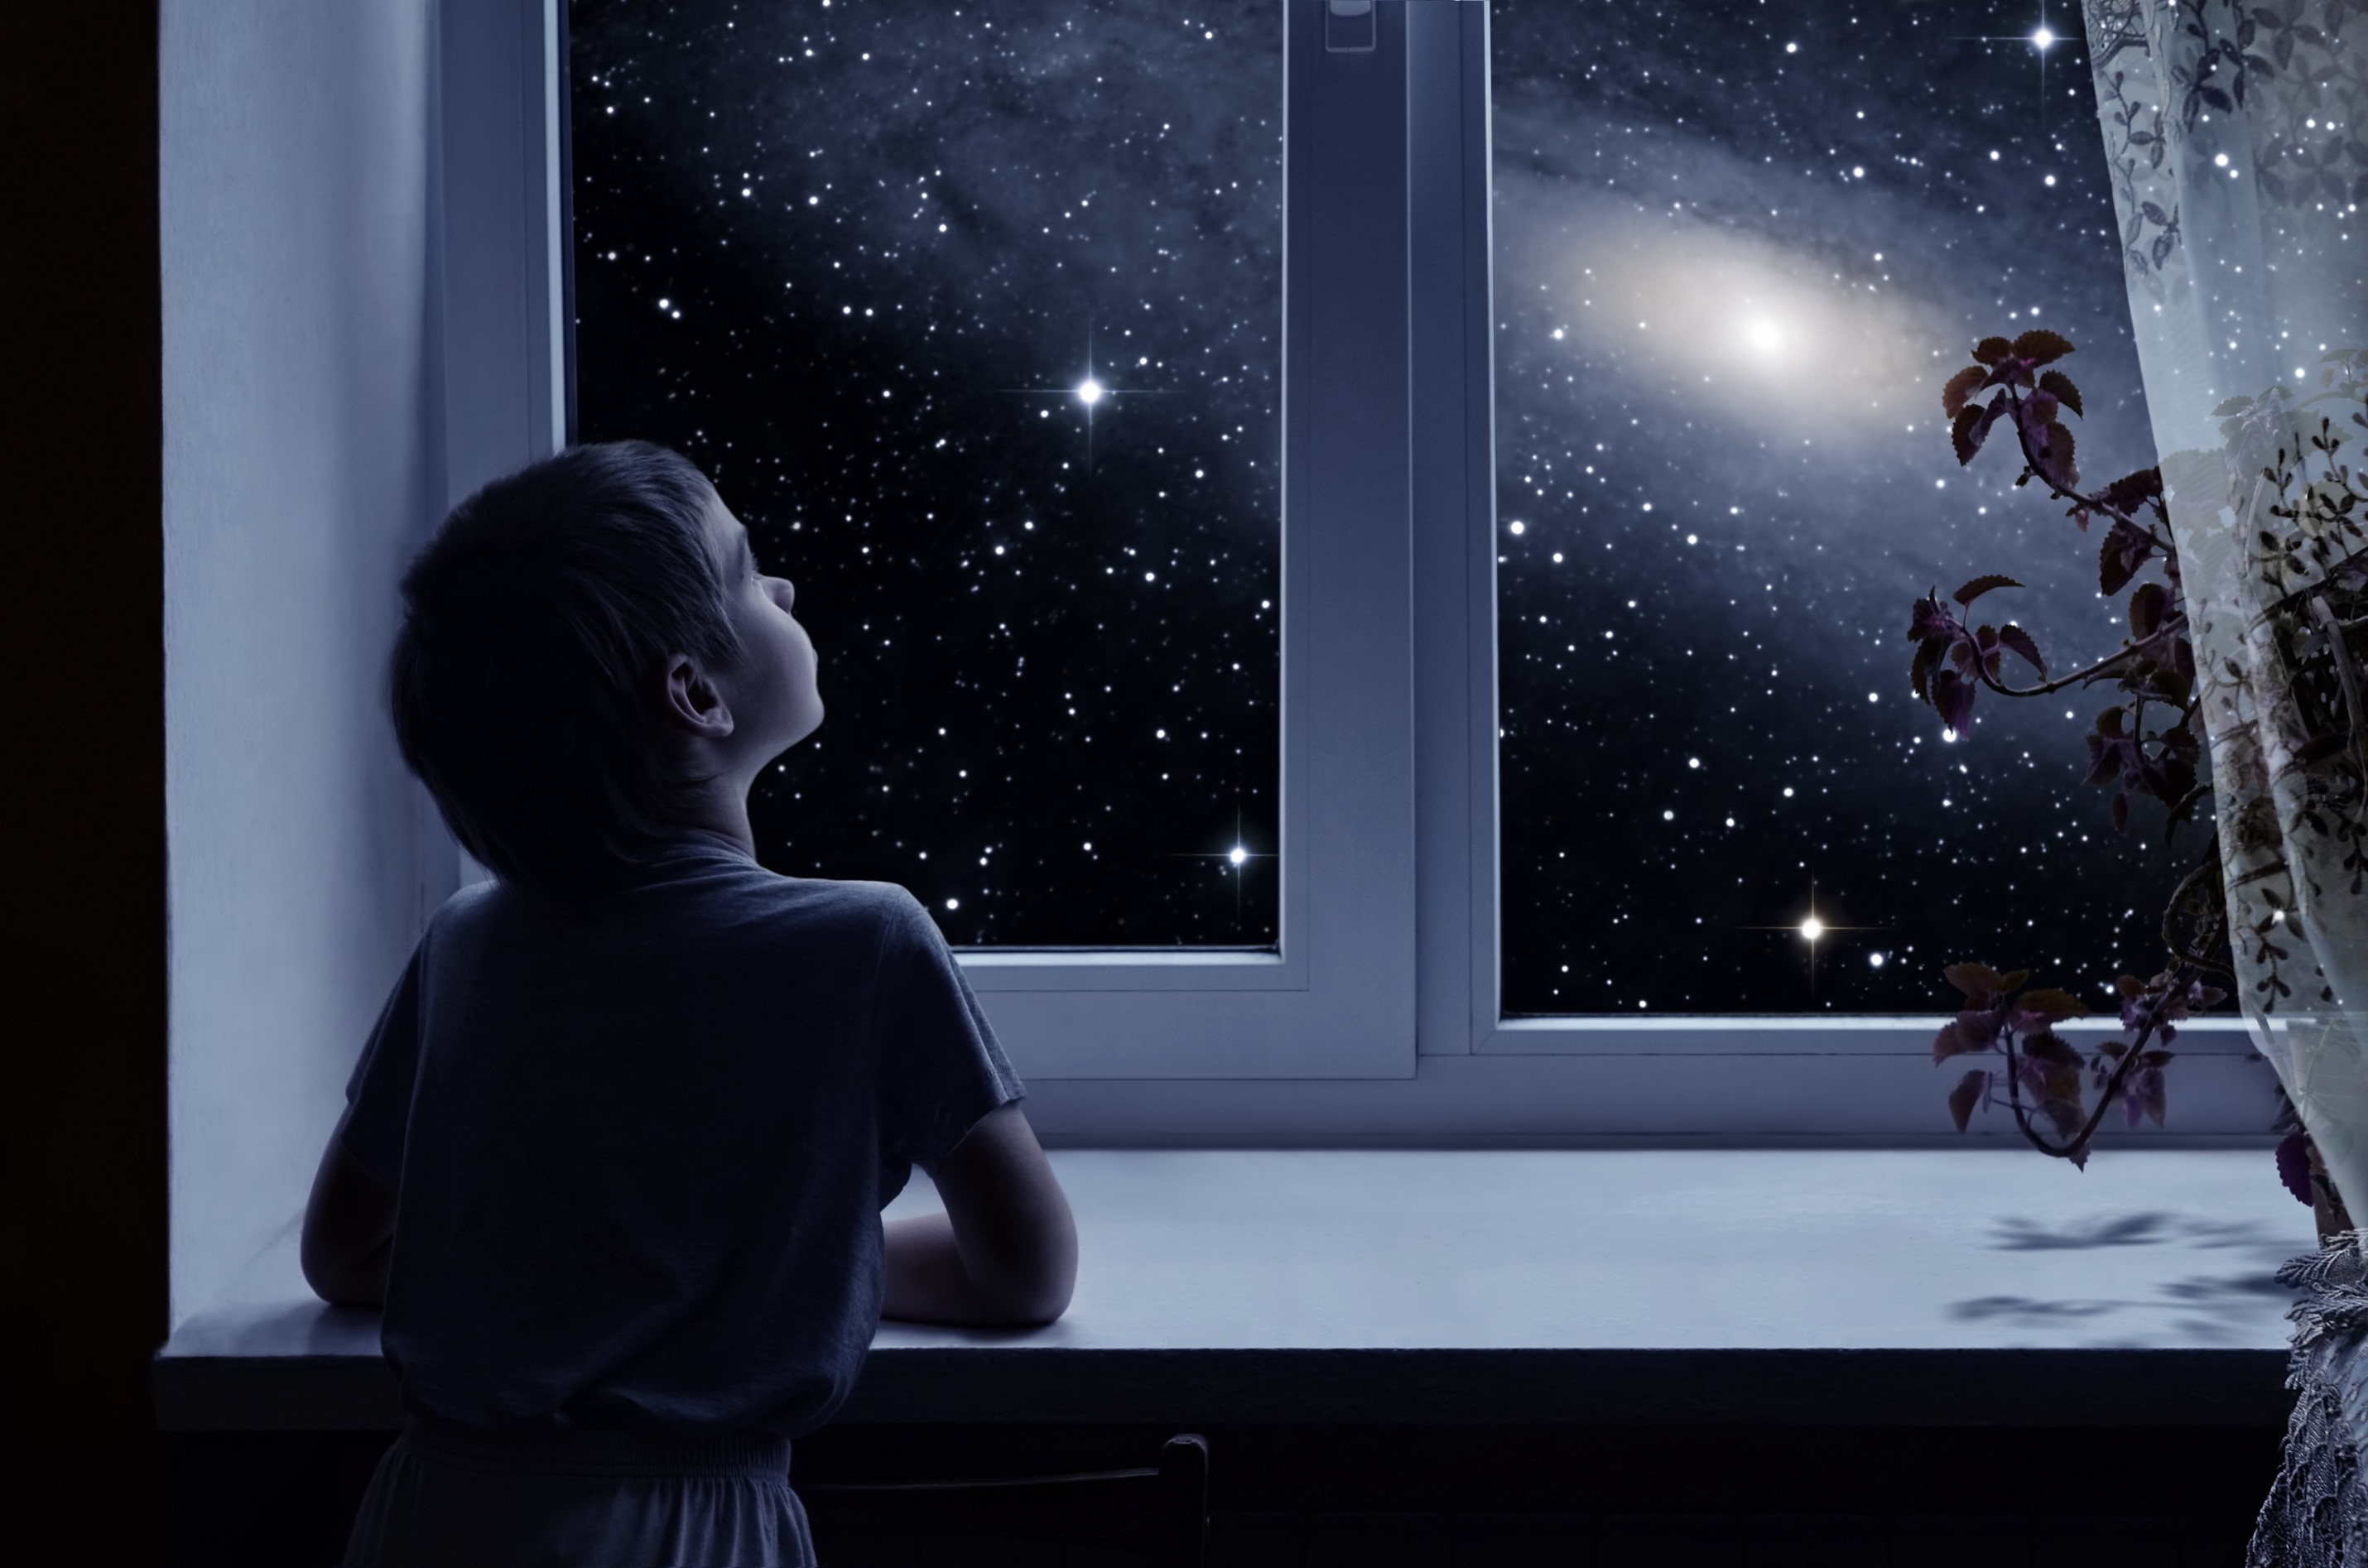 Child looking out window at starry sky.